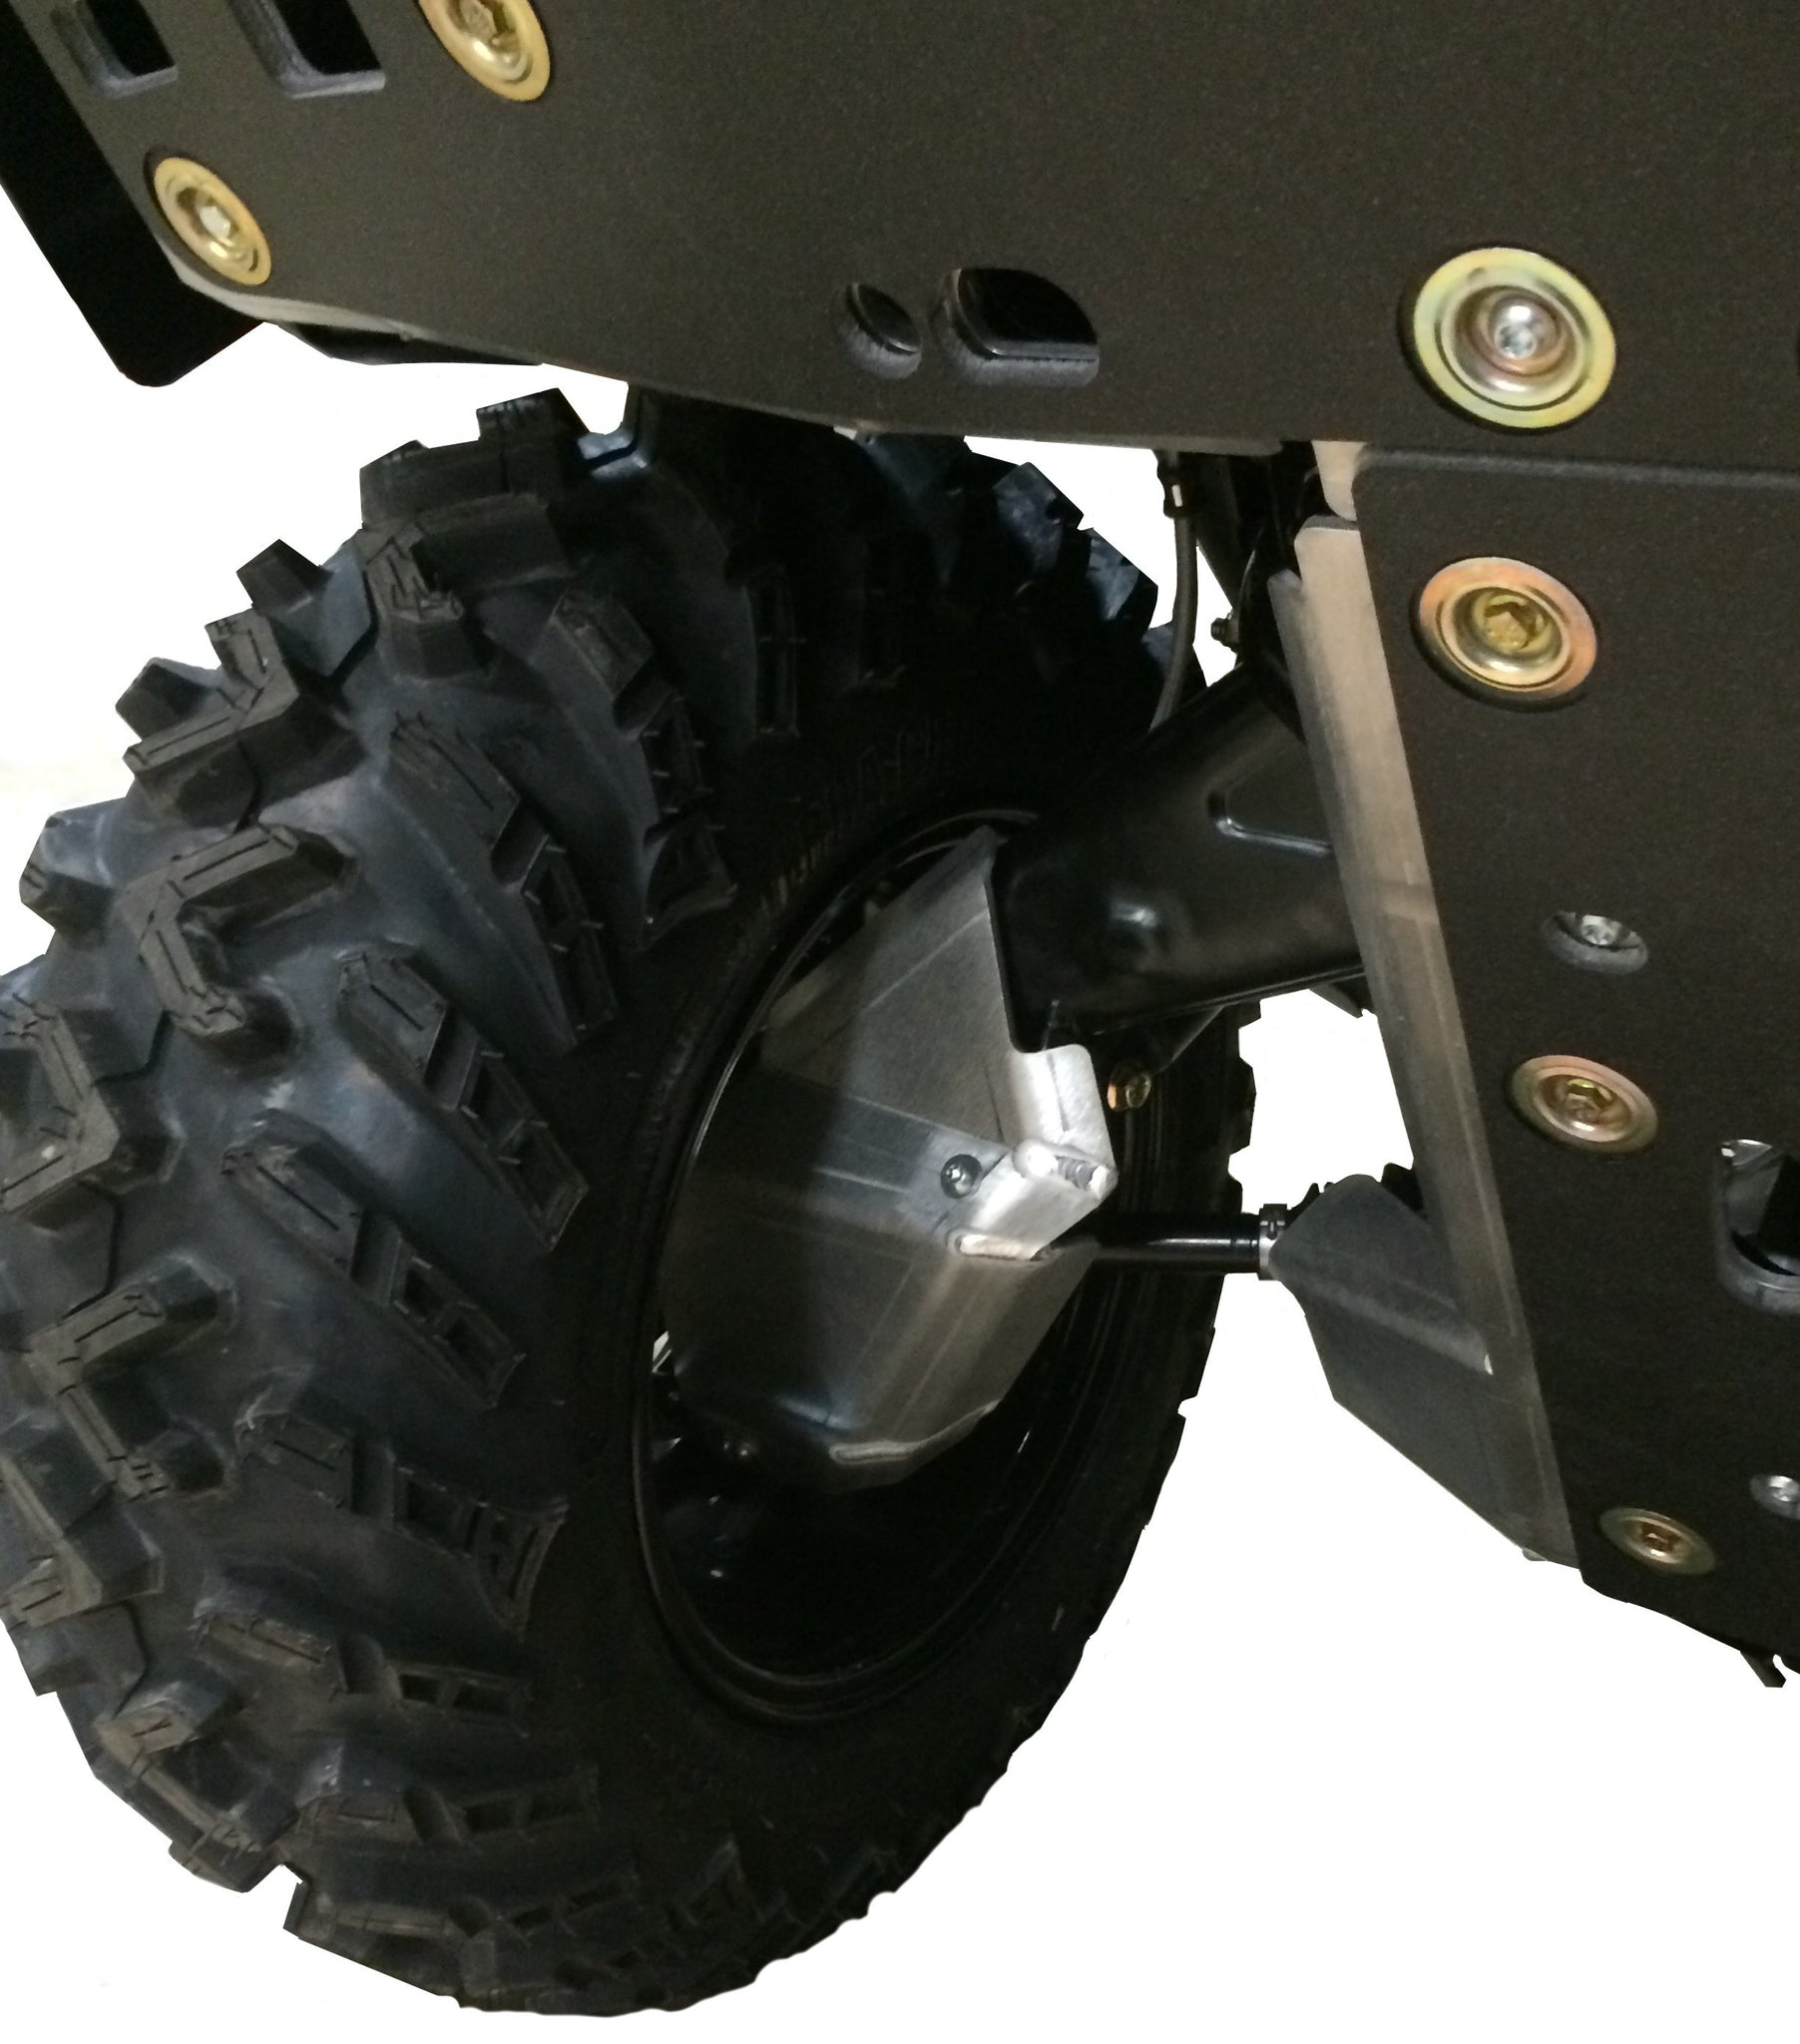 4-Piece A-Arm & CV Boot Guard Set, 2017-2018 Can-Am Outlander 570 Max/DPS